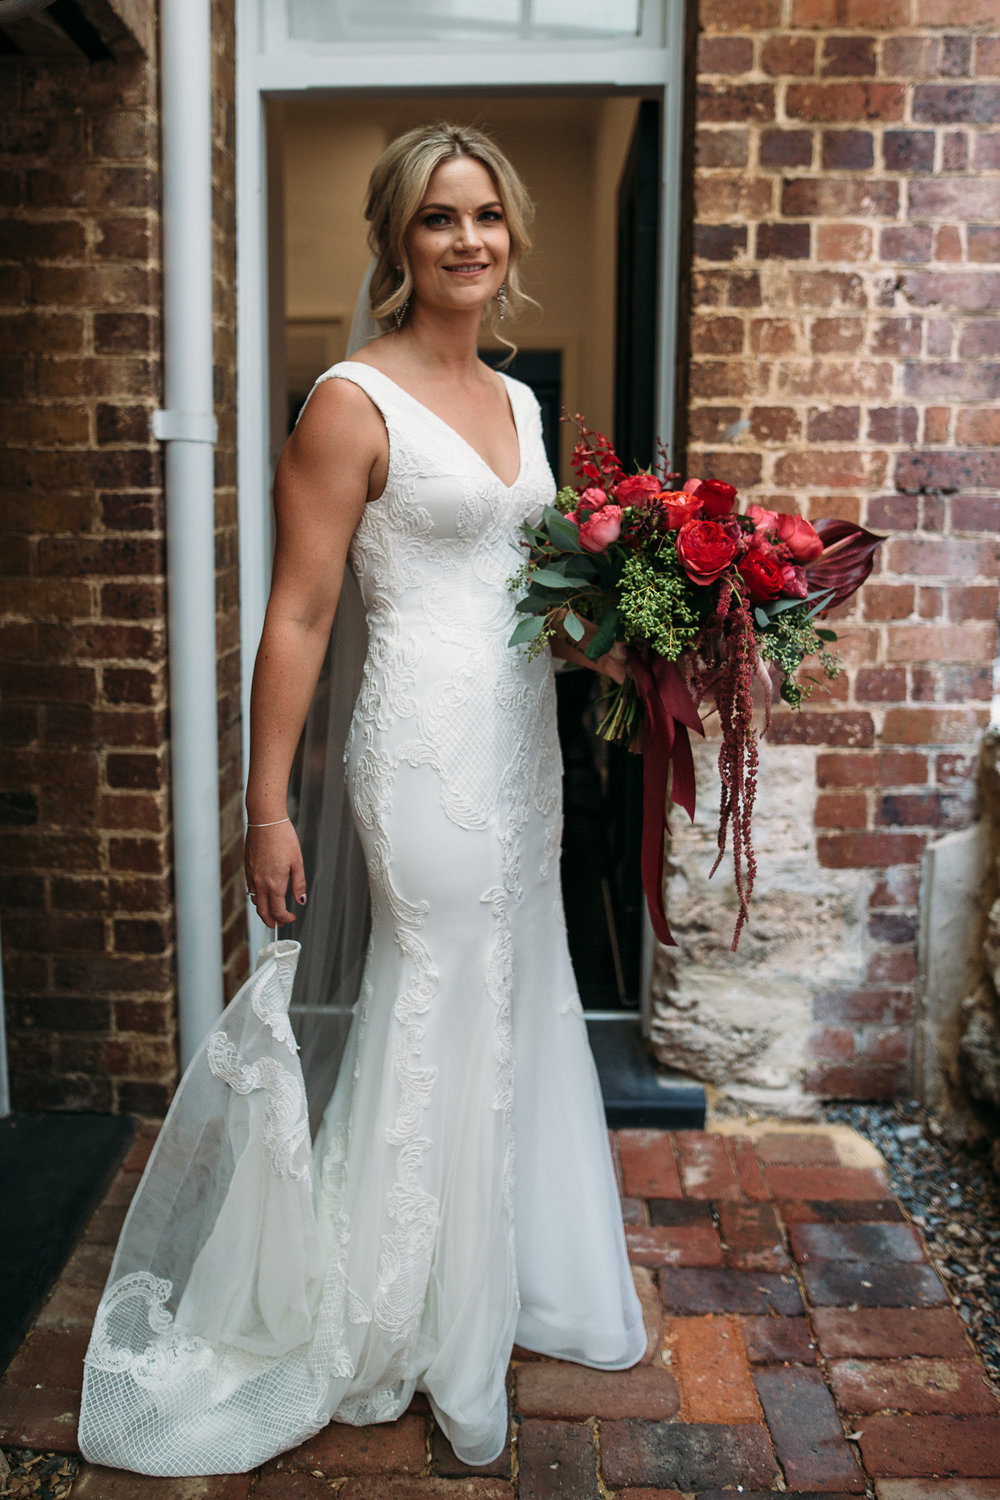 Bride: Teghan | Gown: Bespoke Couture Gown | Photographer: Peggy Sass